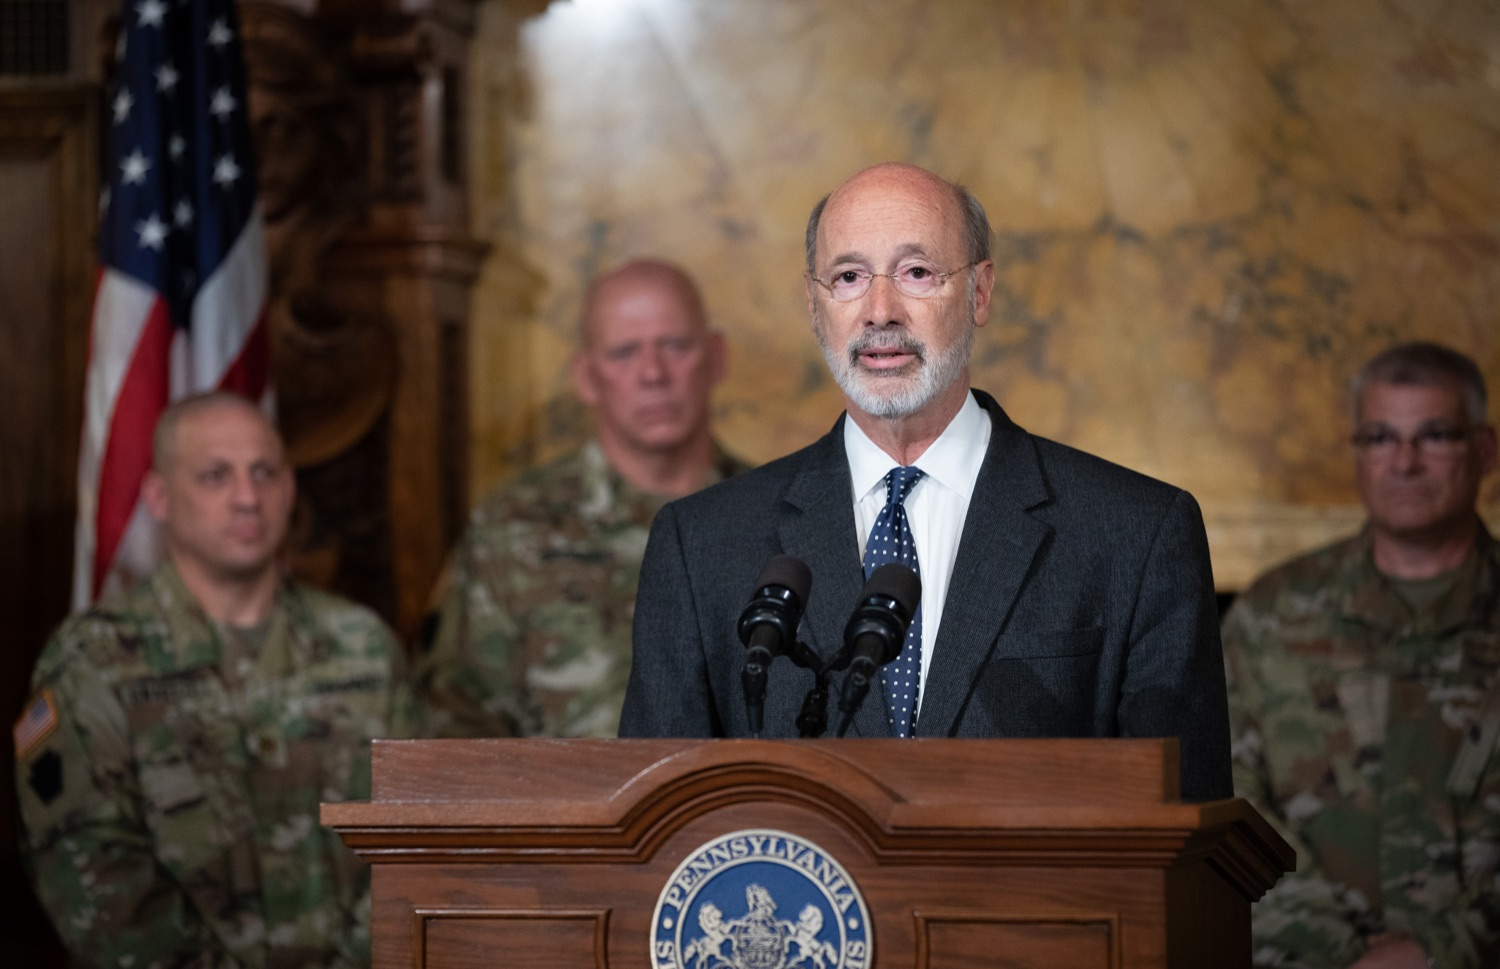 "<a href=""http://filesource.abacast.com/commonwealthofpa/photo/17423_gov_trip_recap_dz_001.jpg"" target=""_blank"">⇣ Download Photo<br></a>Harrisburg, PA  Governor Tom Wolf speaking about his recent visit to Lithuania and Poland.  Governor Tom Wolf today highlighted the second half of his trip abroad, including visiting with more than 500 PA National Guard (PNG) troops in Poland, and honoring the Tree of Life synagogue victims at the Auschwitz-Birkenau Memorial. Tuesday, September 17, 2019"